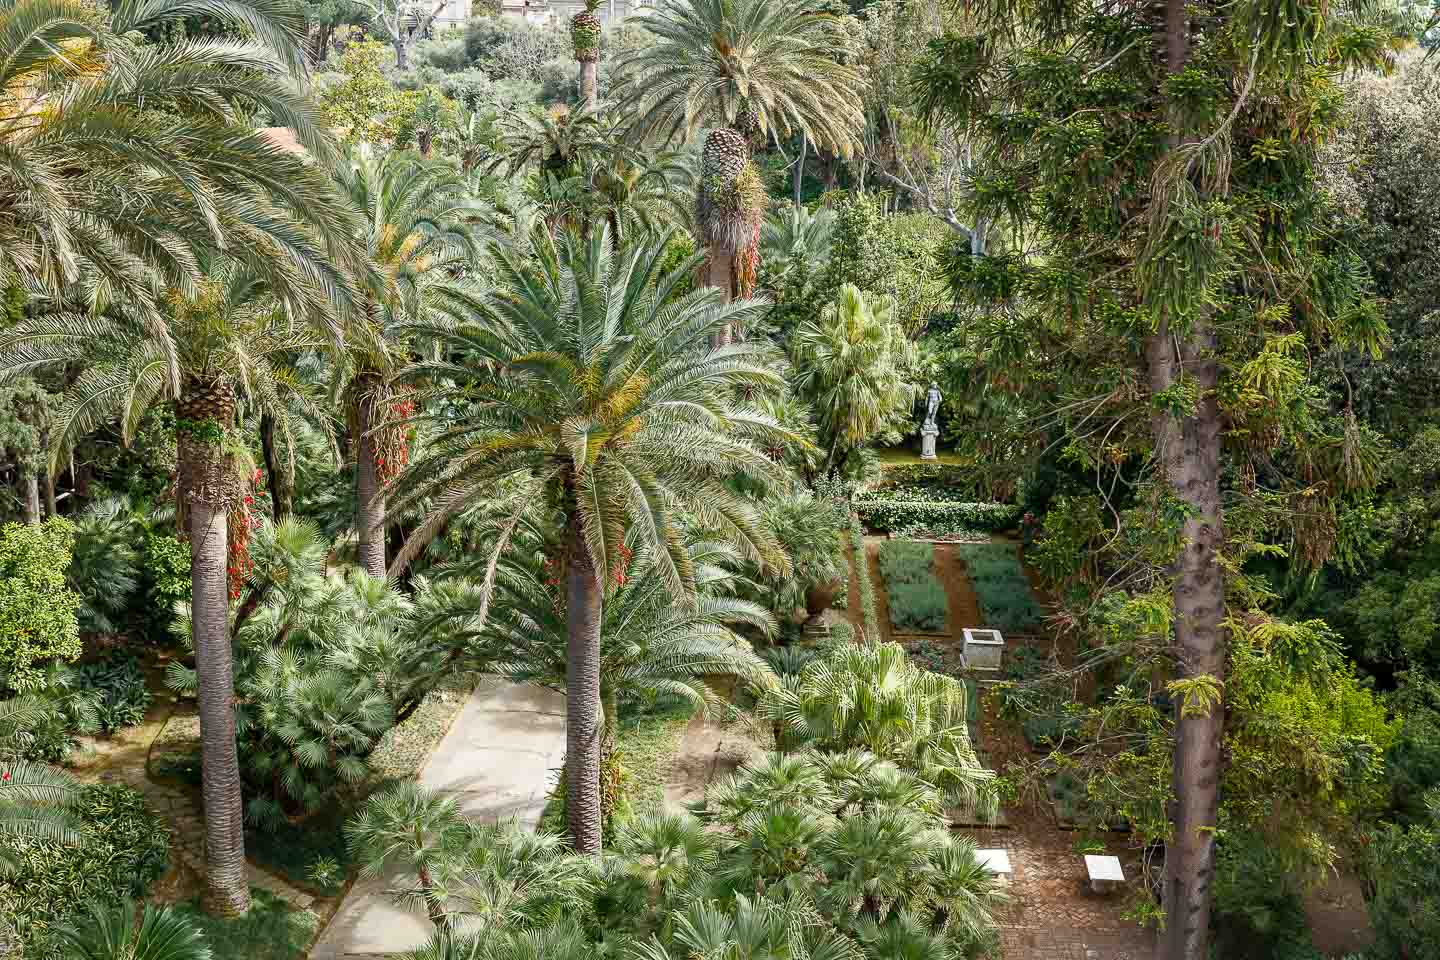 Villa Astor Amalfi coast Sorrento house exclusive rental expansive sumptouous landscape botanical garden thousand plant species trees exotic flowers 35